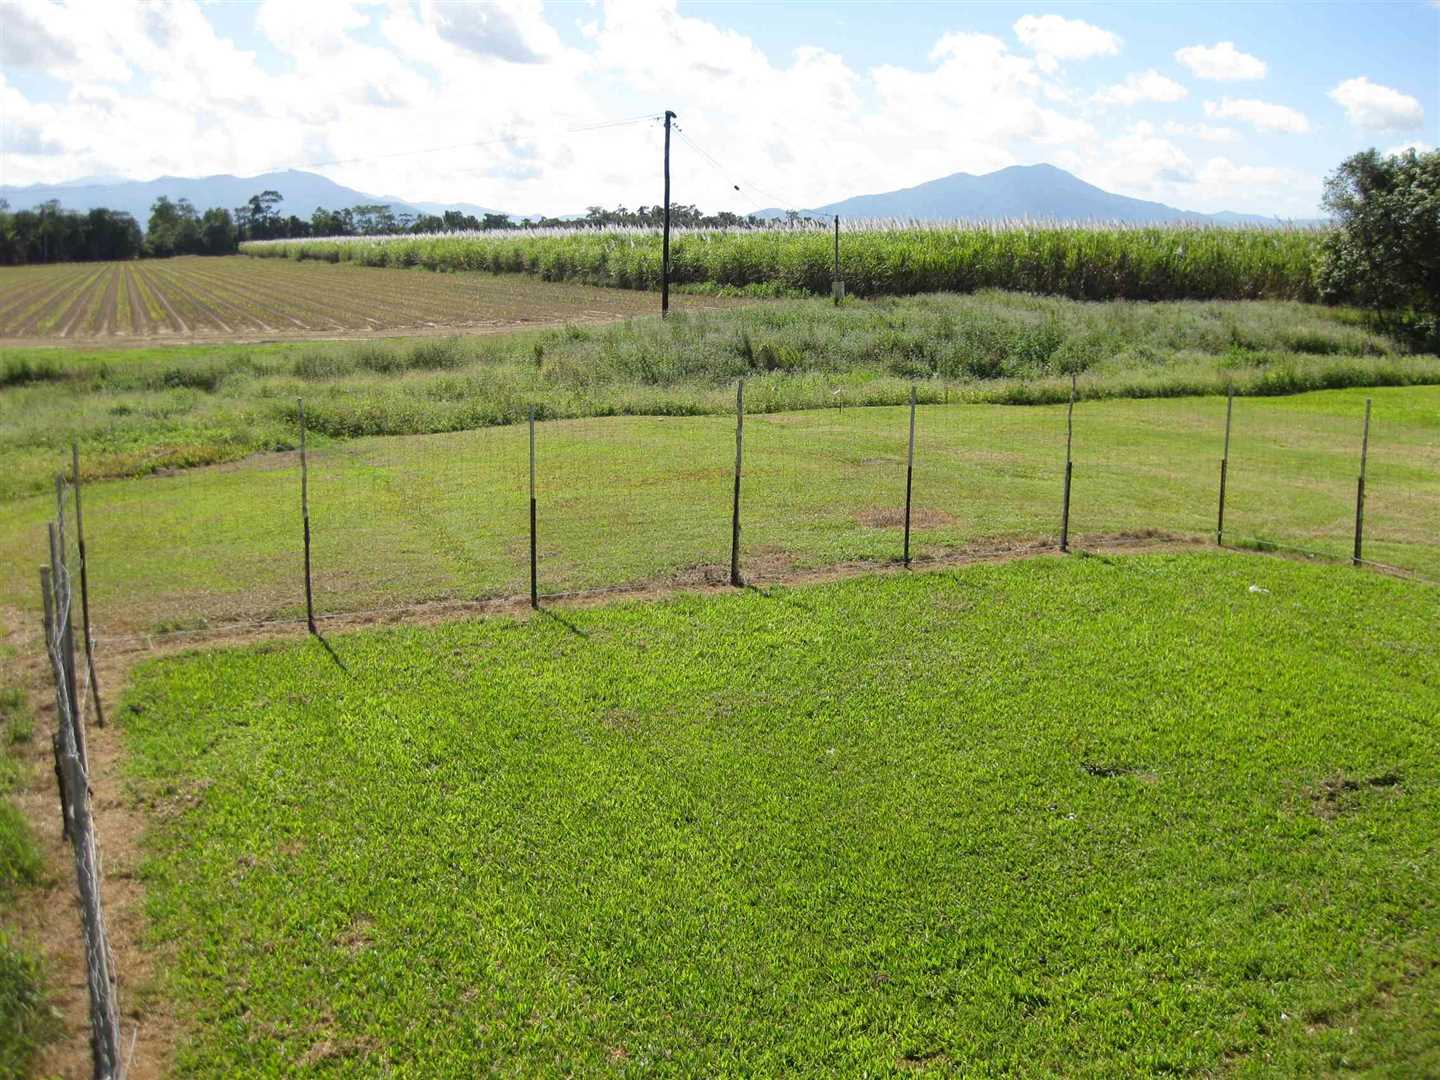 View from part of high-set home back verandah showing part of property. Fence shown excluded, property of the tenant